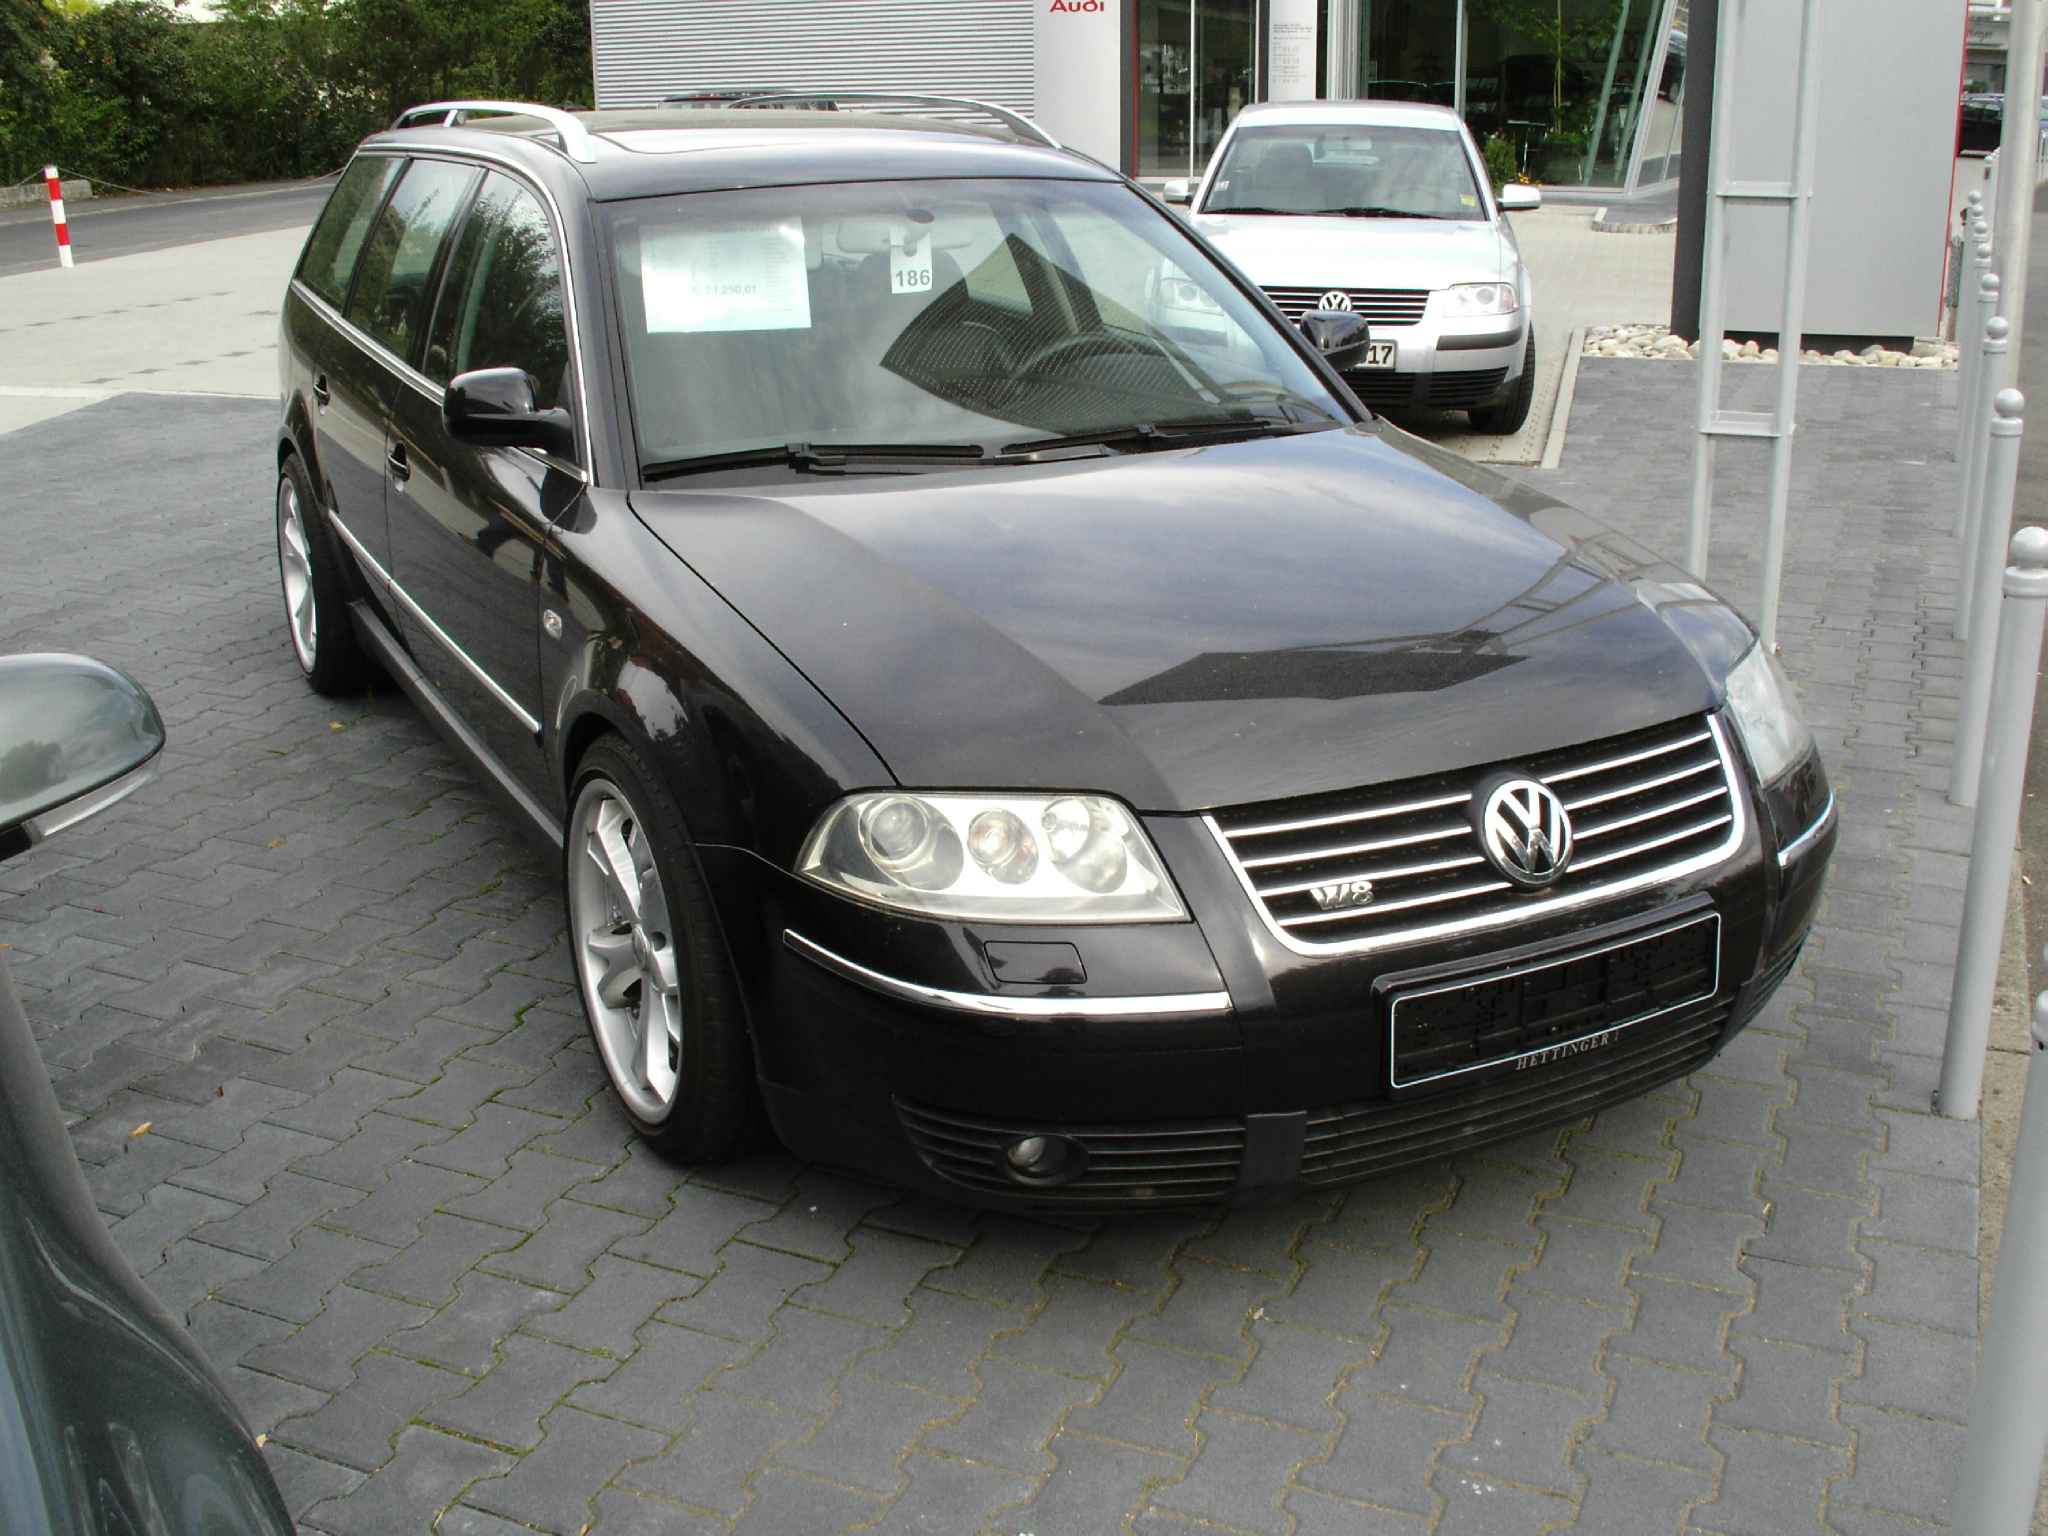 volkswagen passat w8 2001 2004 zoom auto blog. Black Bedroom Furniture Sets. Home Design Ideas